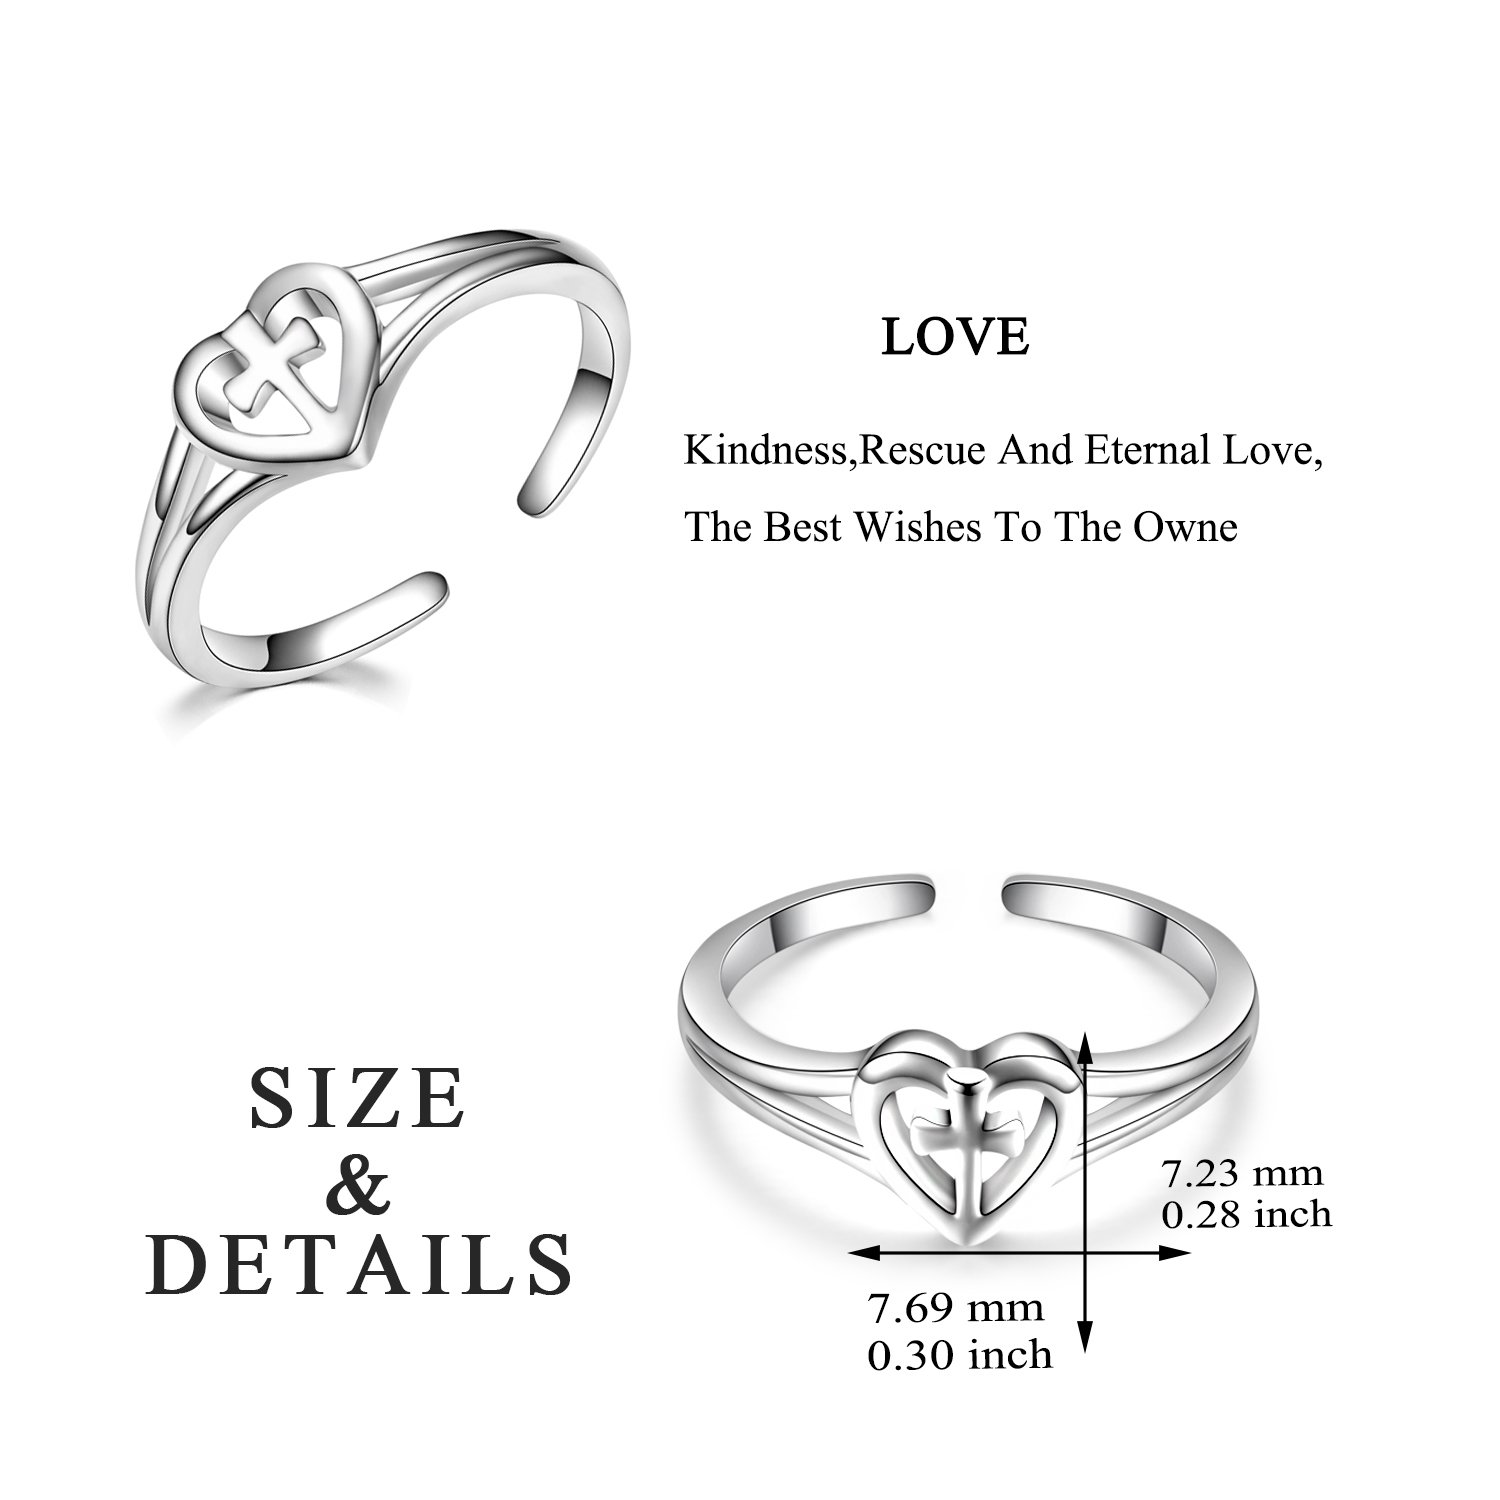 Sterling Silver Love Cross Rings Adjustable Open Polished Christian Heart Promise Anniversary Rings for Her, Size 7 by LUHE (Image #3)